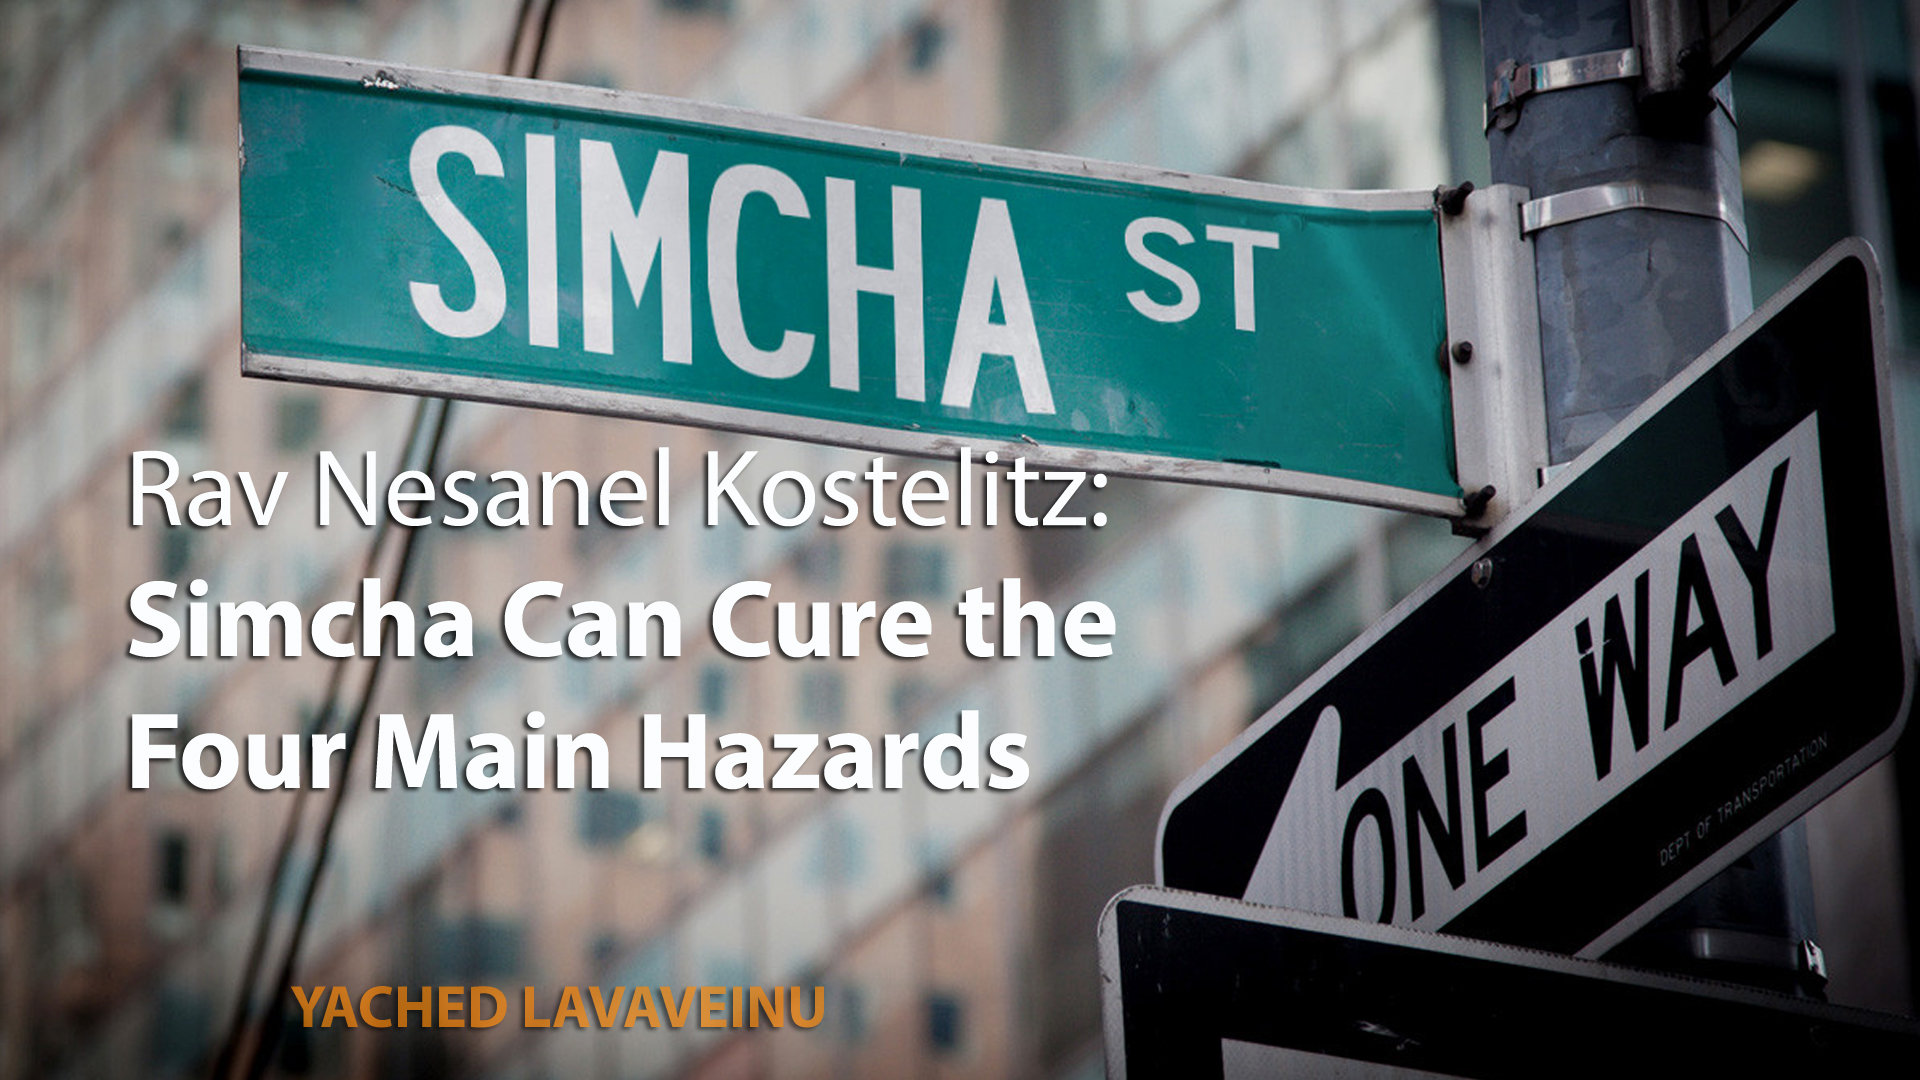 Rav Nesanel Kostelitz: Simcha Can Cure the 4 Main Hazards